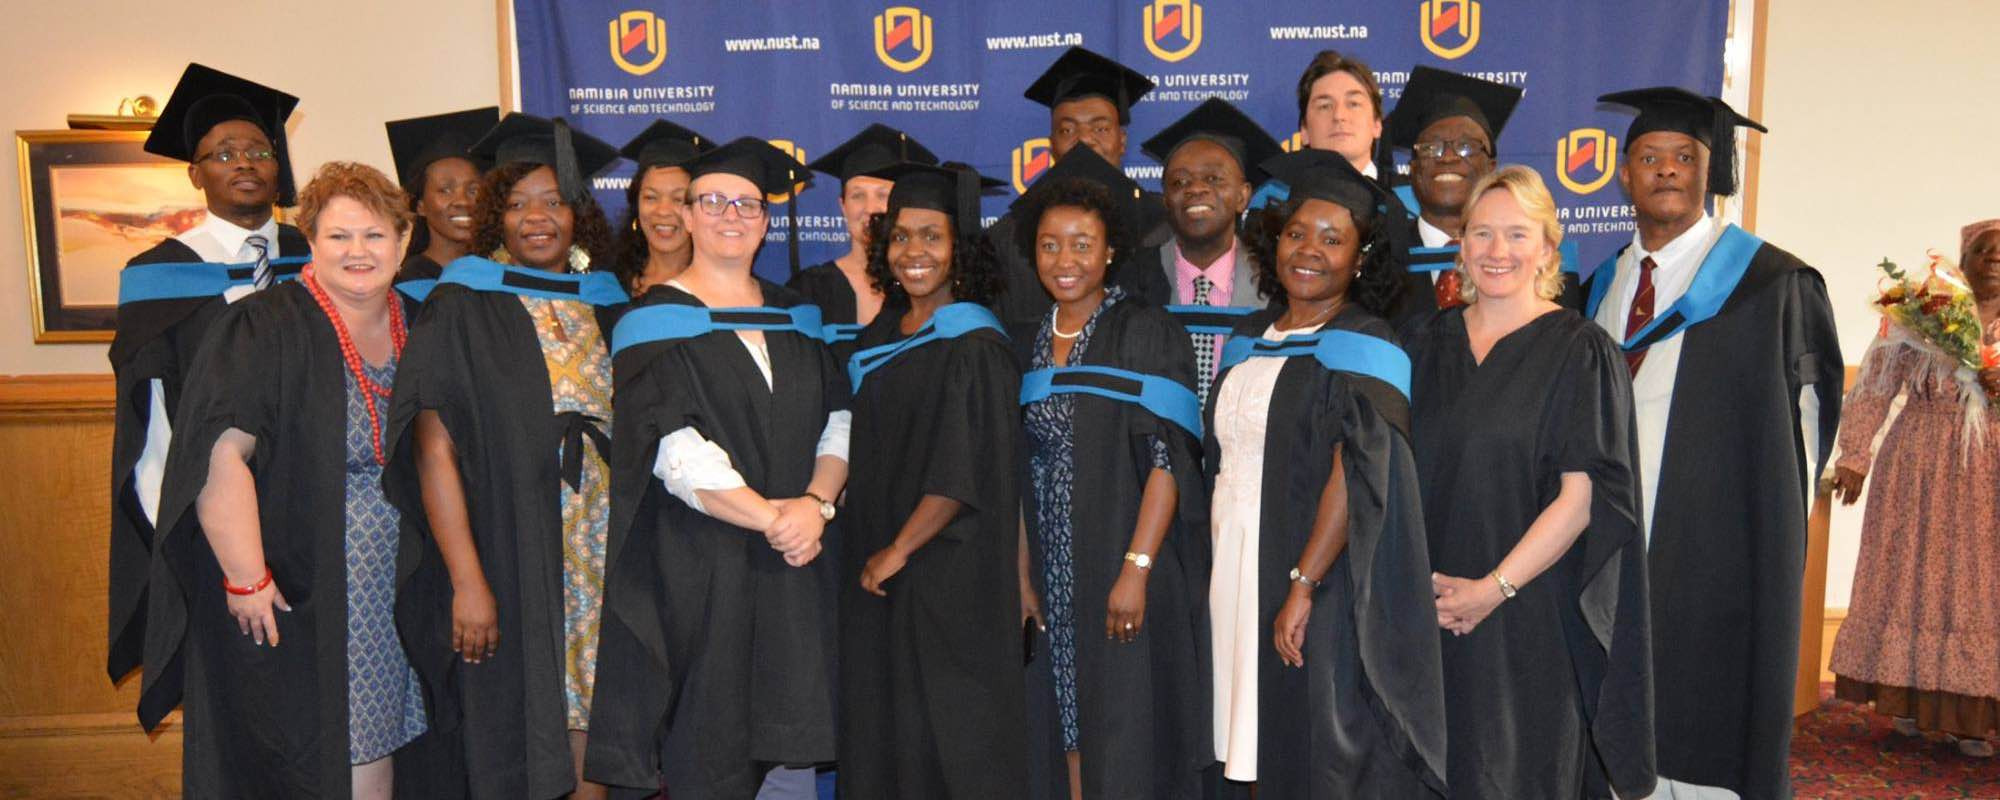 Admissions | Namibia University of Science and Technology on university of swaziland application forms, university of guyana application forms, university of witwatersrand application forms, university of botswana application forms, university of kwazulu natal application forms, university of zululand application forms, university of pretoria application forms, university of limpopo application forms, university of fort hare application forms, university of kzn application forms, university of johannesburg application forms, university of malawi application forms,